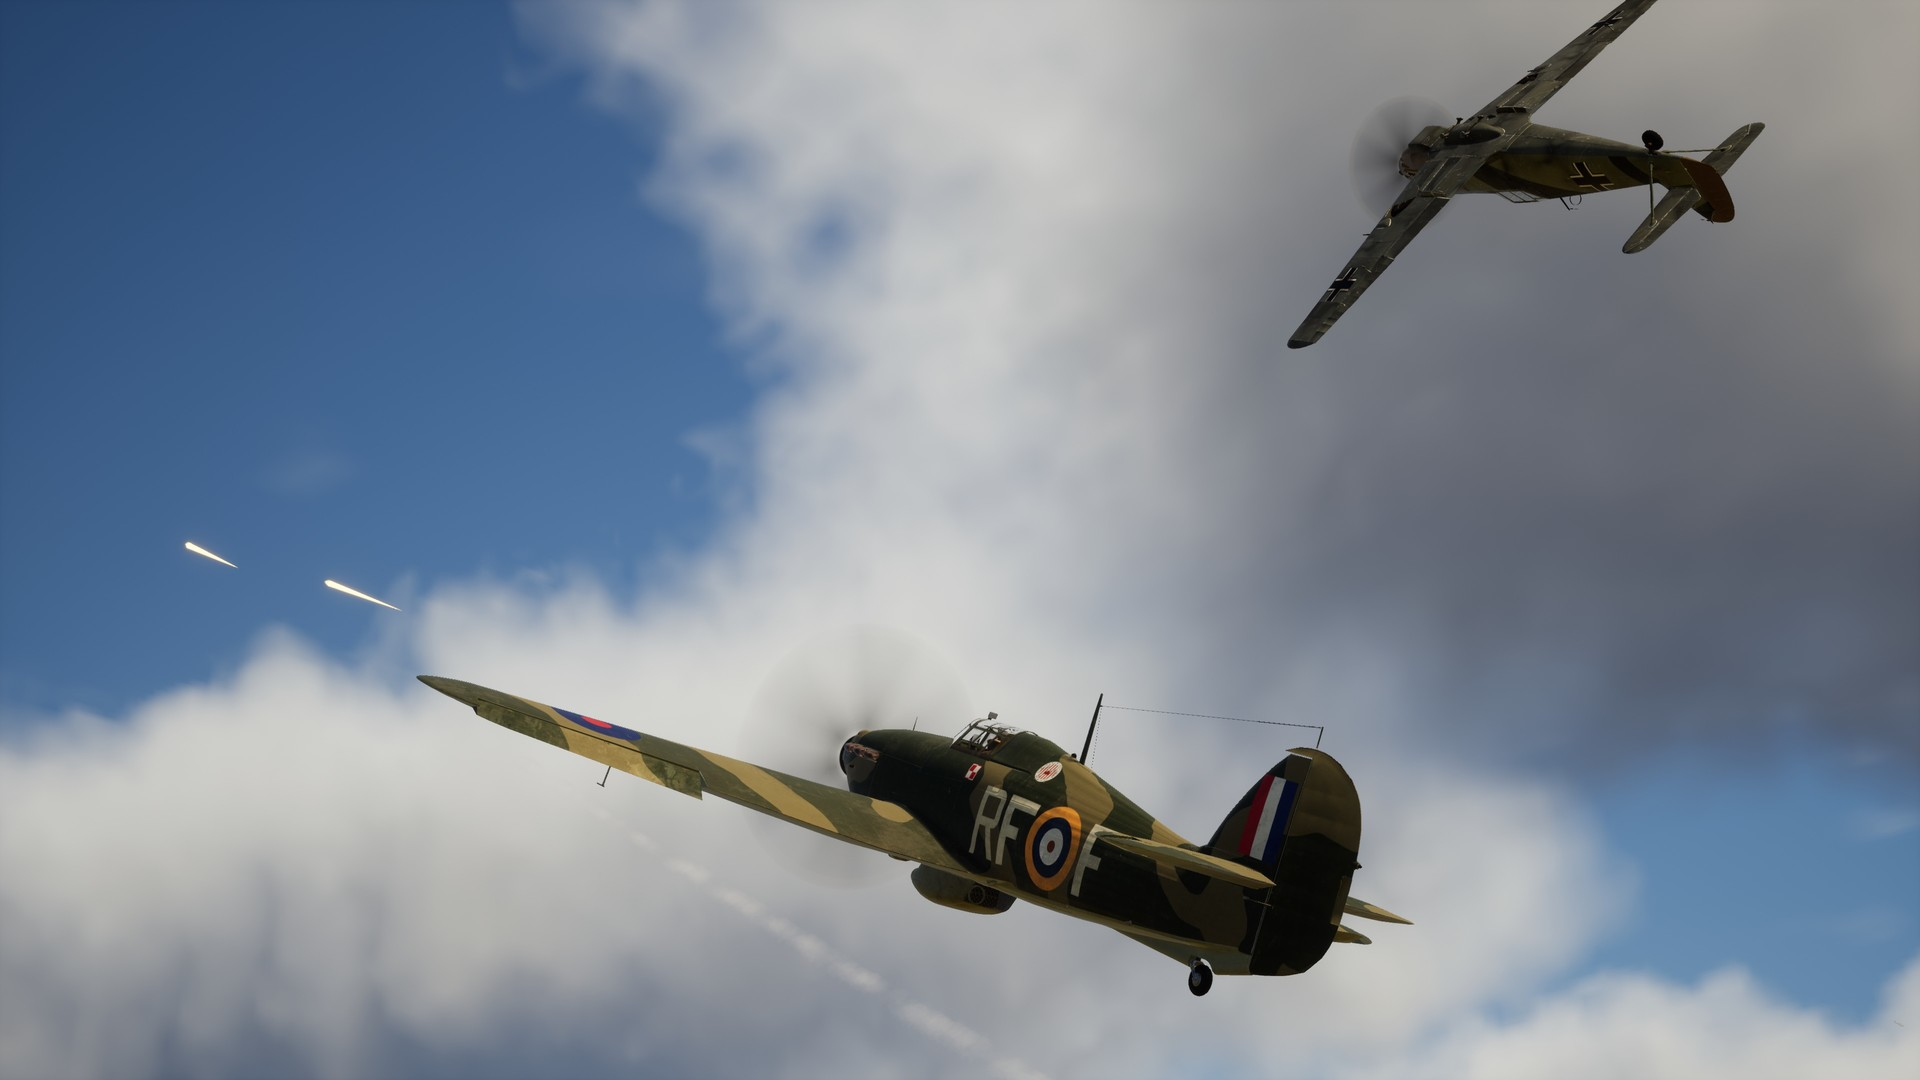 save 35% on 303 squadron: battle of britain on steam